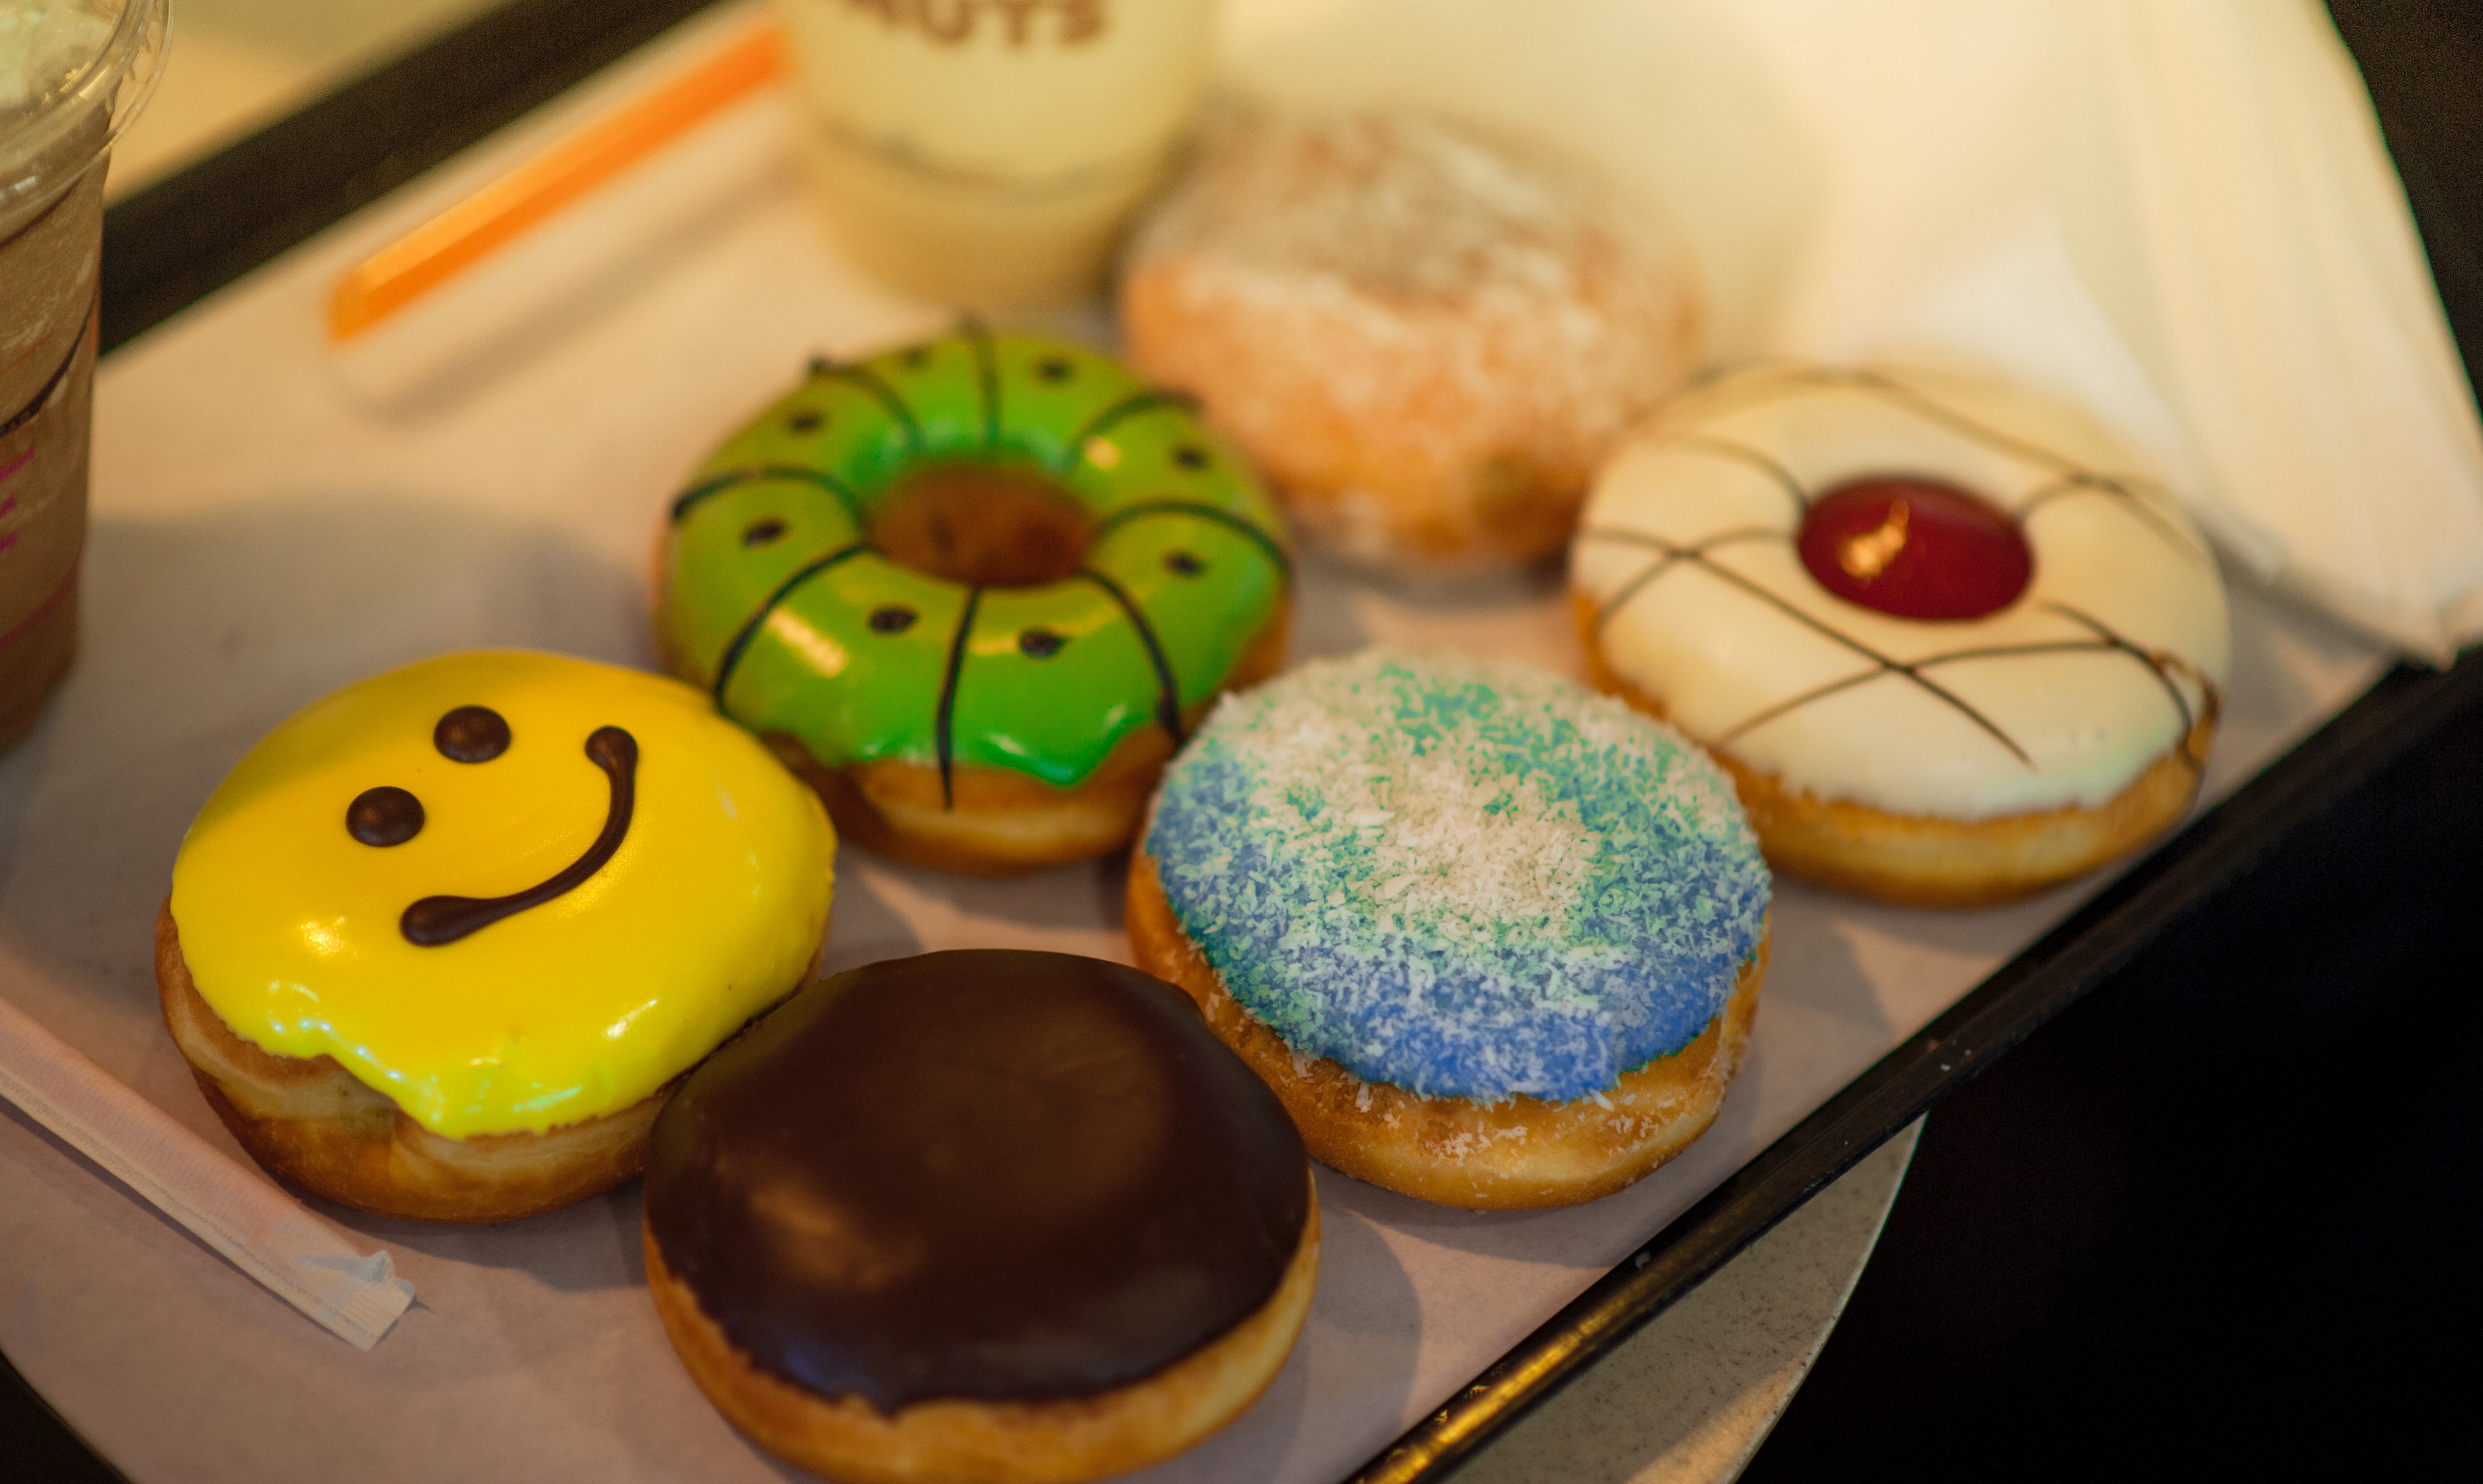 Shallow Focus Photography of Assorted Flavored Donuts, Assorted, Focus, Tasty, Table, HQ Photo